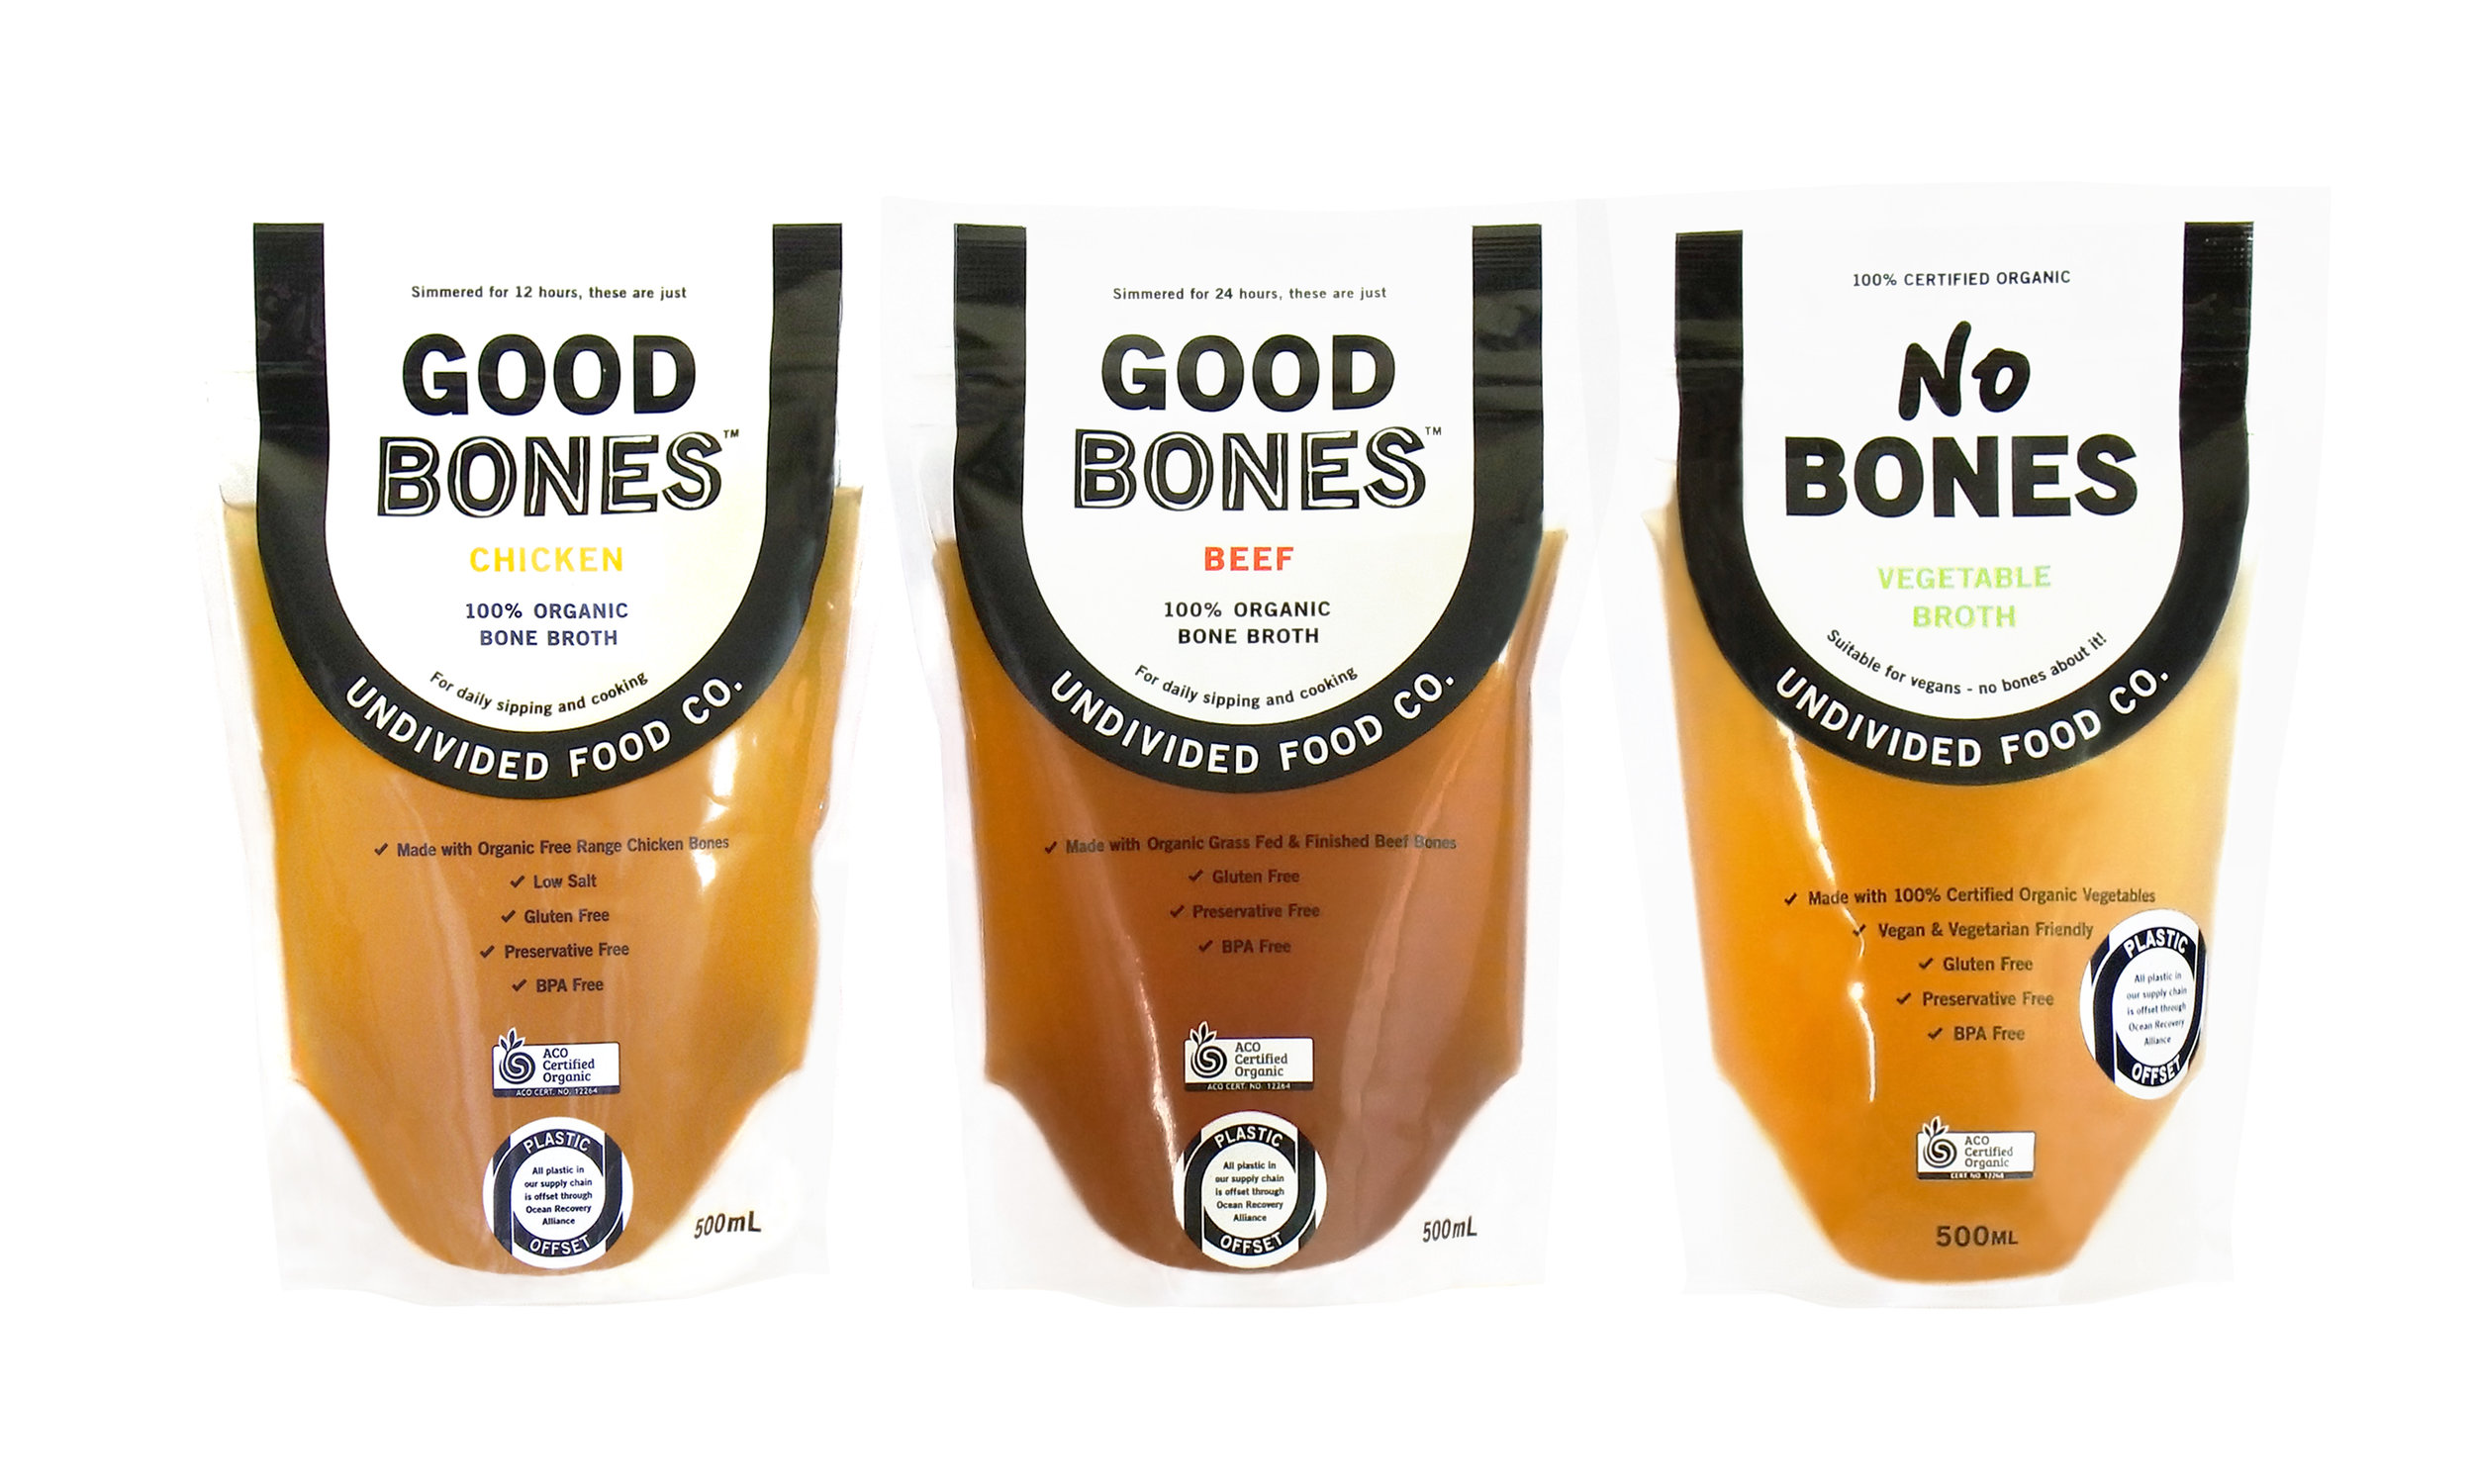 We no longer deliver chilled broth products in Sydney as they are widely available in stores. - Please order GOOD BONES™ online from Organic Meat Online for Australia-wide delivery) or go to our Stockist Page to find an online retailer in your state or purchase in-store from your nearest stockist!If you are an existing customer and would still like home delivery please email us at info@undividedfoodco.com and we will try and accommodate you in the short term. Please note we will be offering a shelf stable broth in 2020.